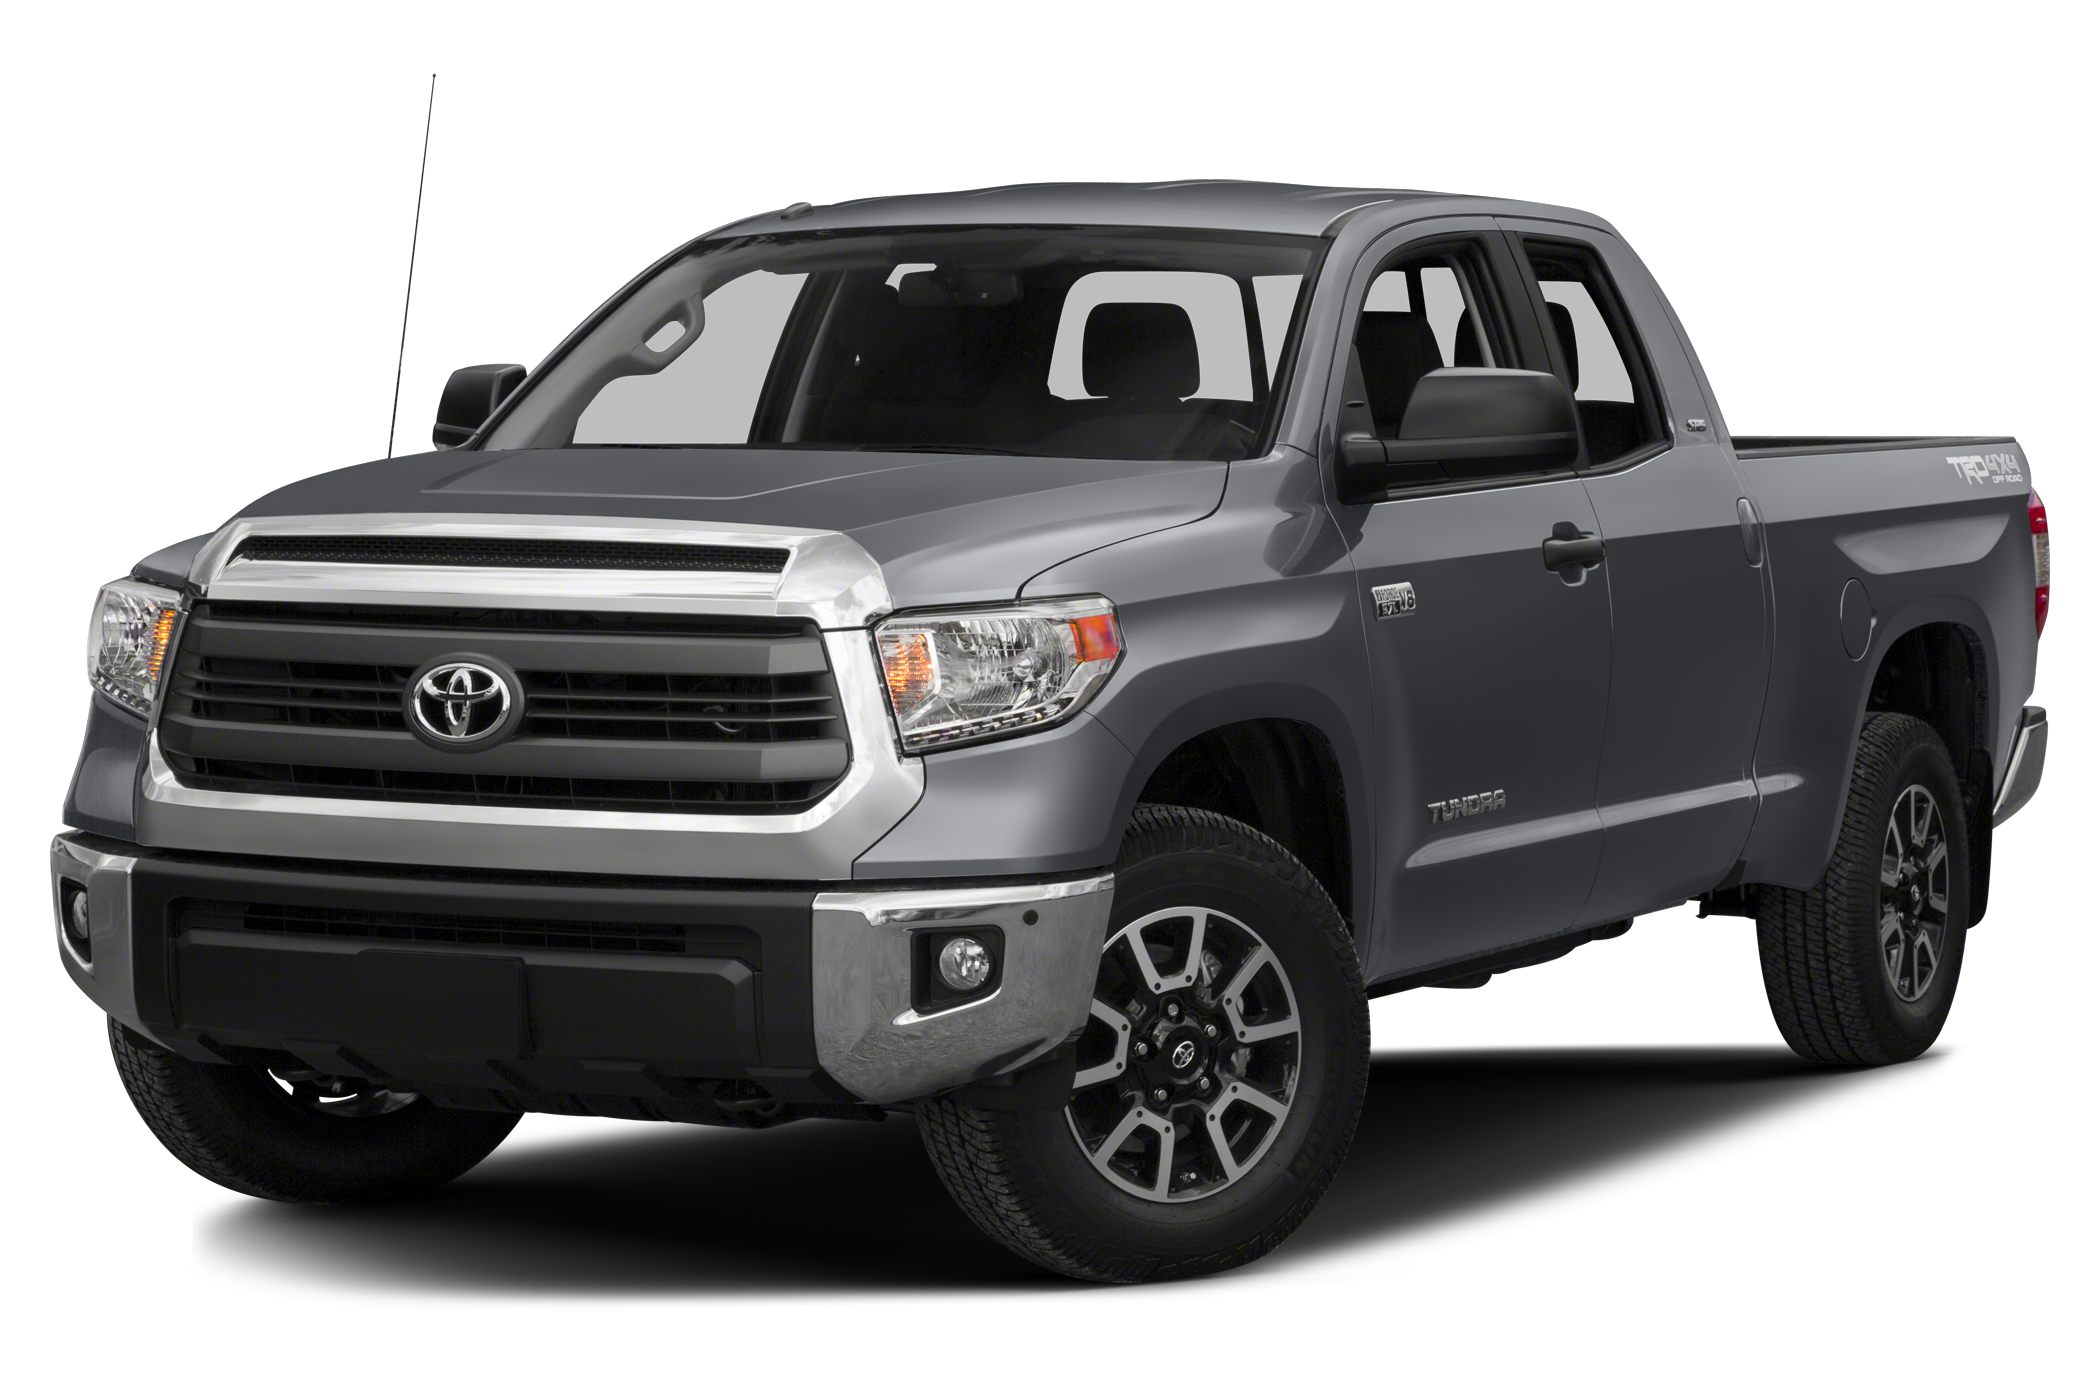 2014 Toyota Tundra Limited Crew Cab Pickup for sale in Charlotte for $38,981 with 7,686 miles